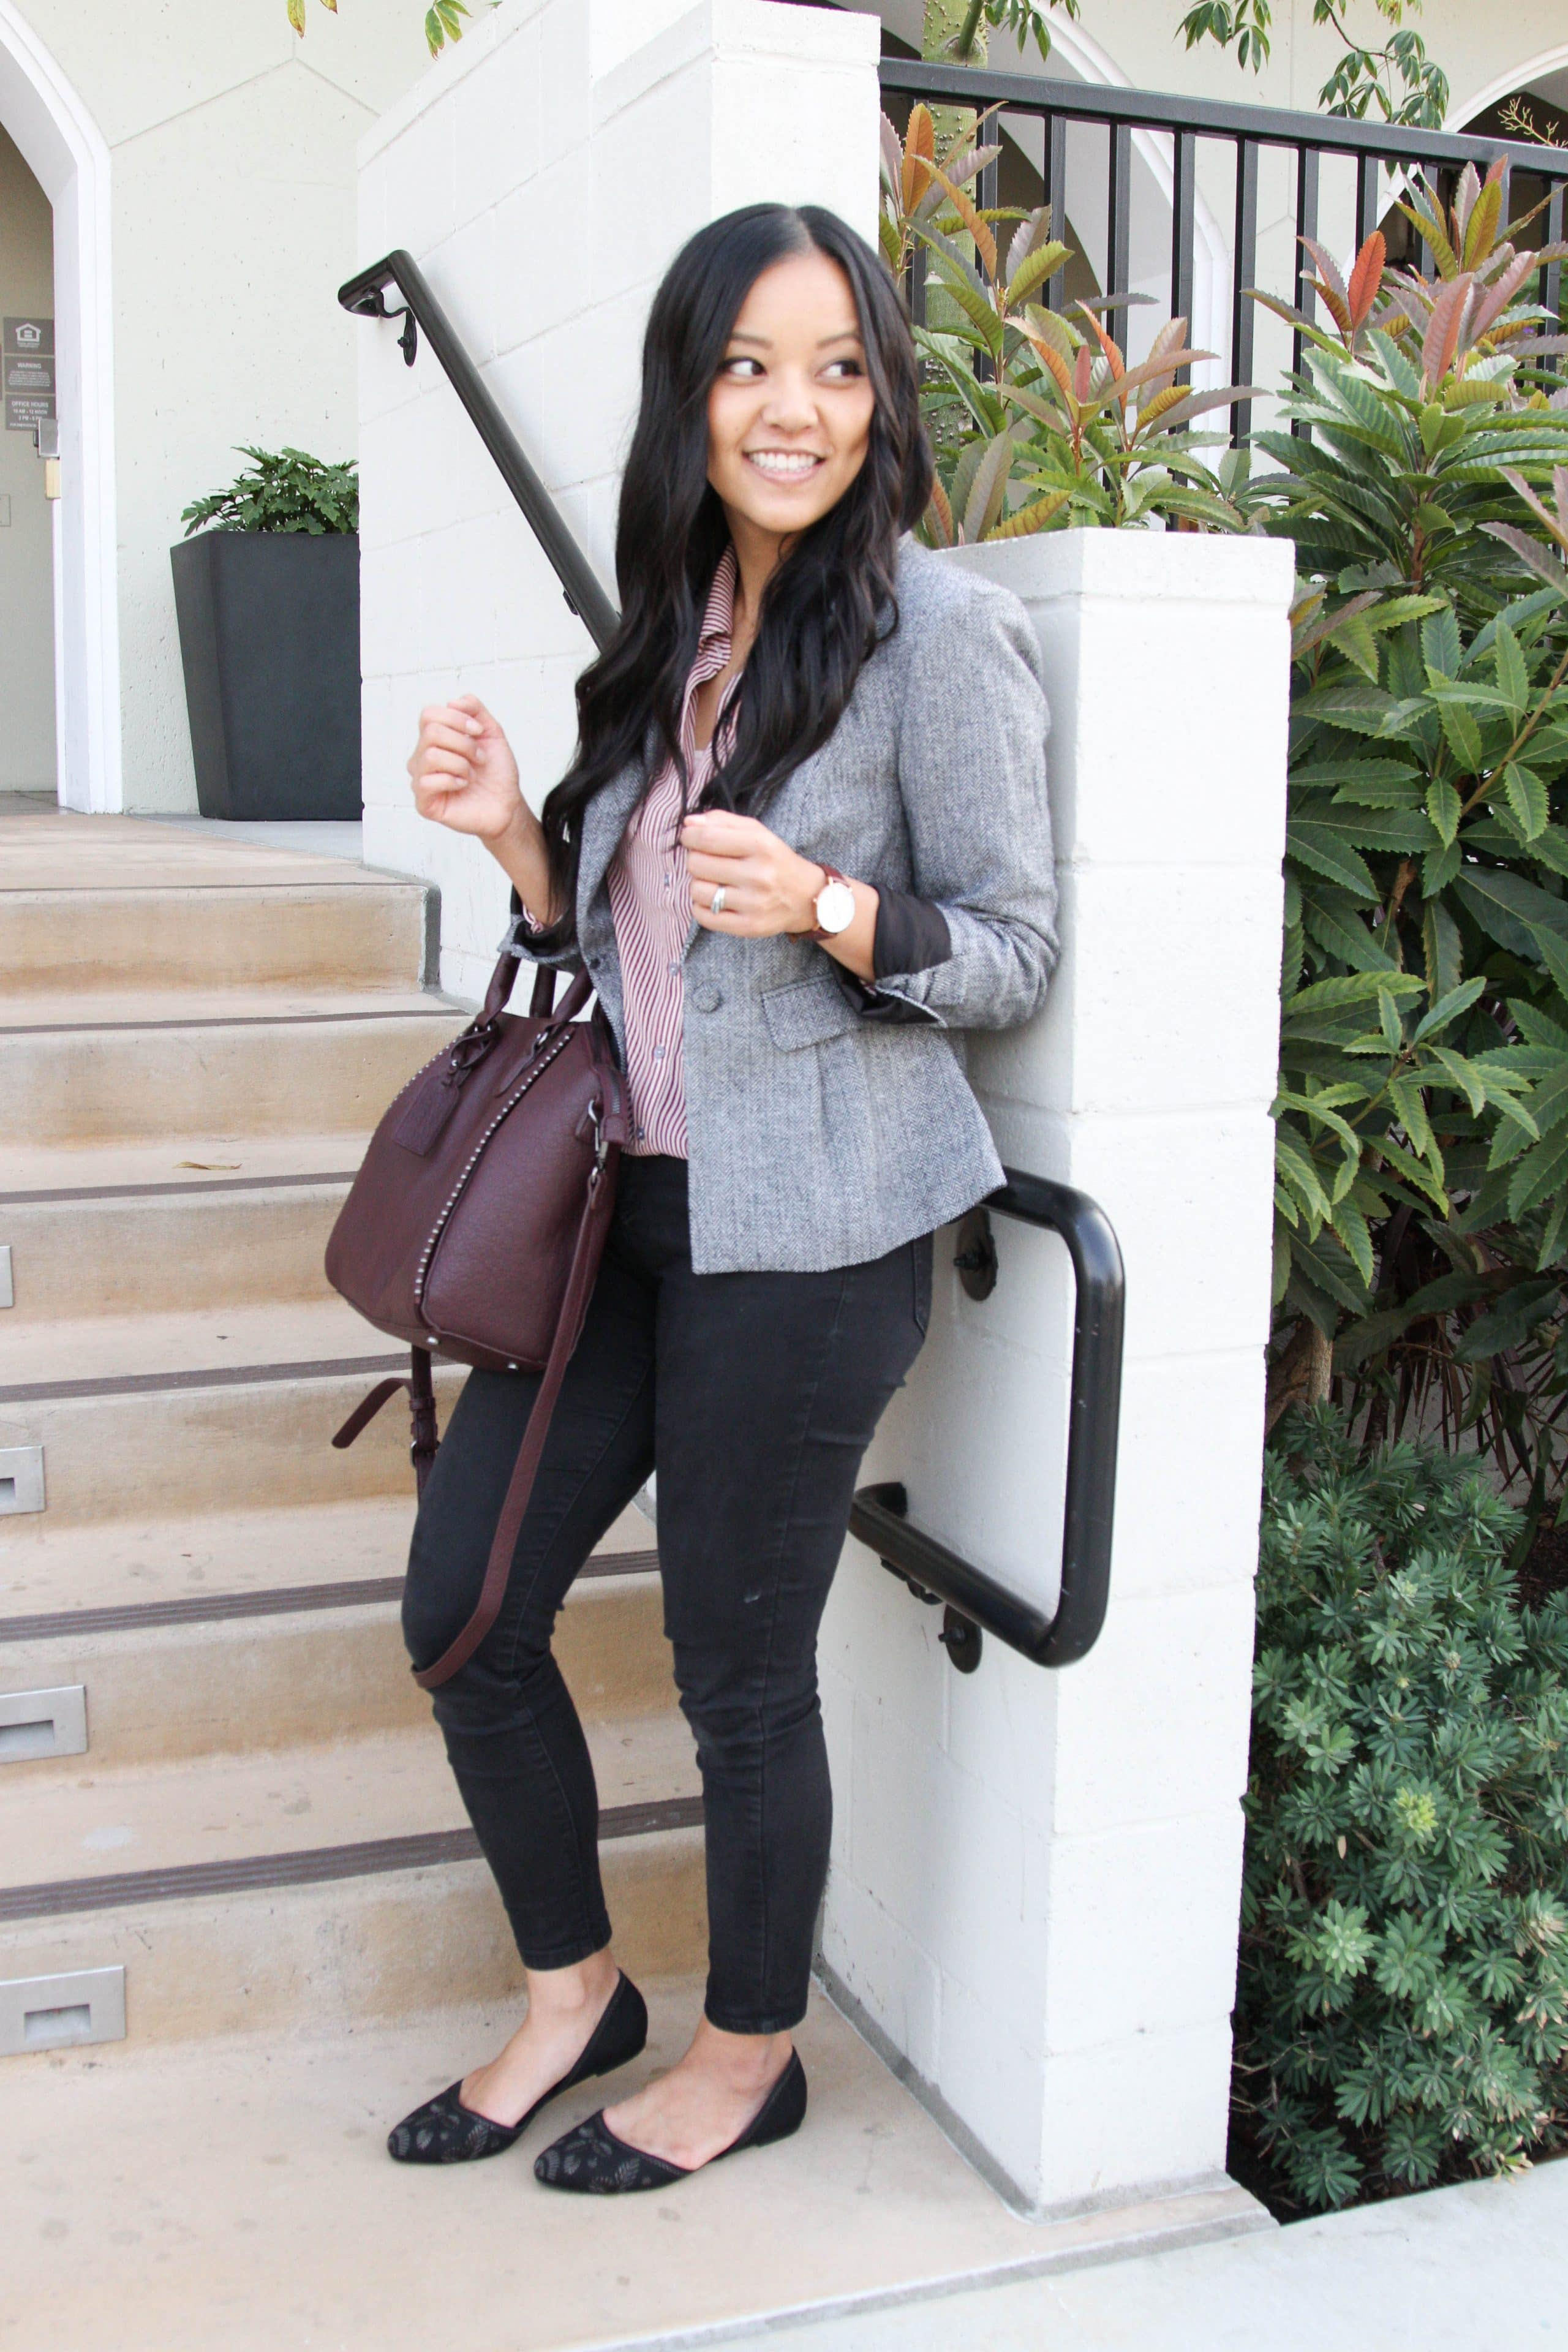 Grey Blazer + Maroon Stripe Blouse + Black Skinnies + Wine Colored Tote + Black Flats